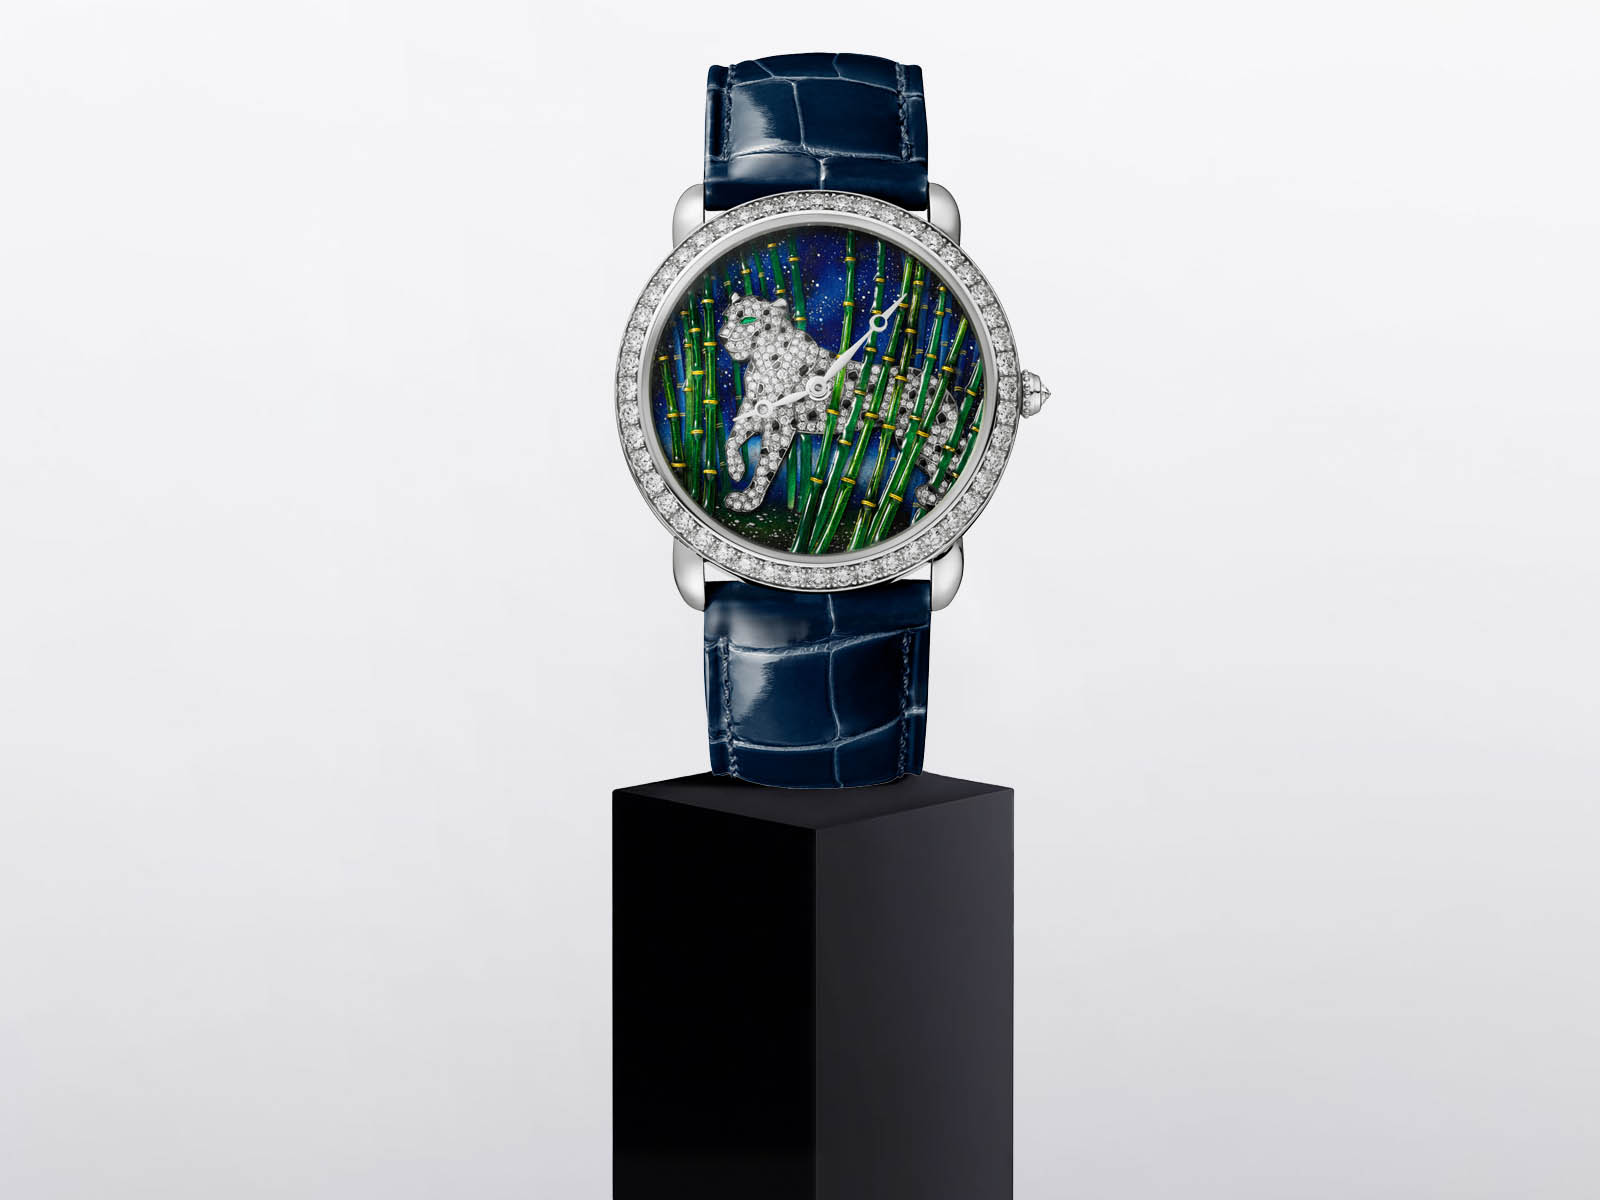 ronde-louis-cartier-enamel-filigree-watch-metiers-d-art-watches-wonders-2020-1.jpg